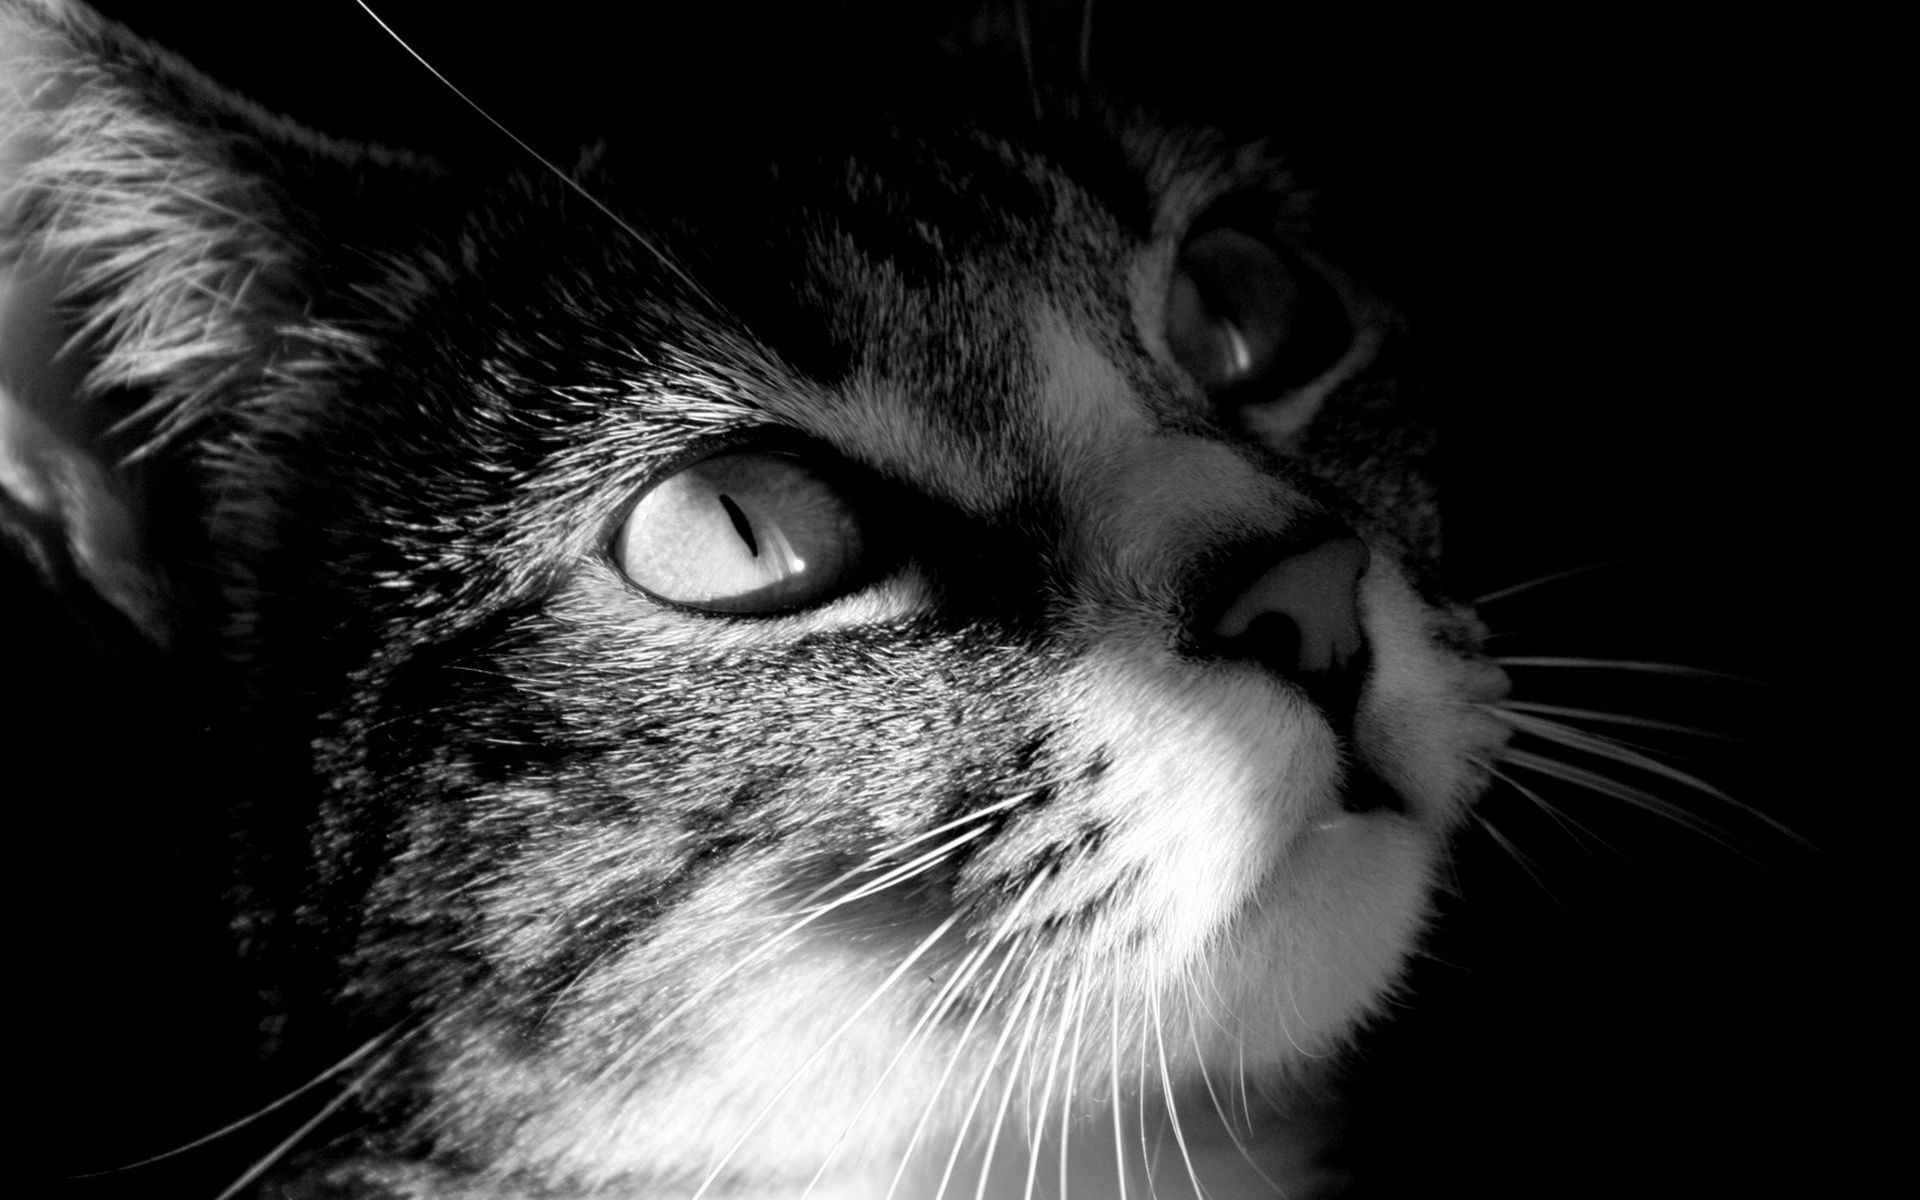 Cute Cat Black And White Desktop Wallpaper White Cats Cats Cat Photography